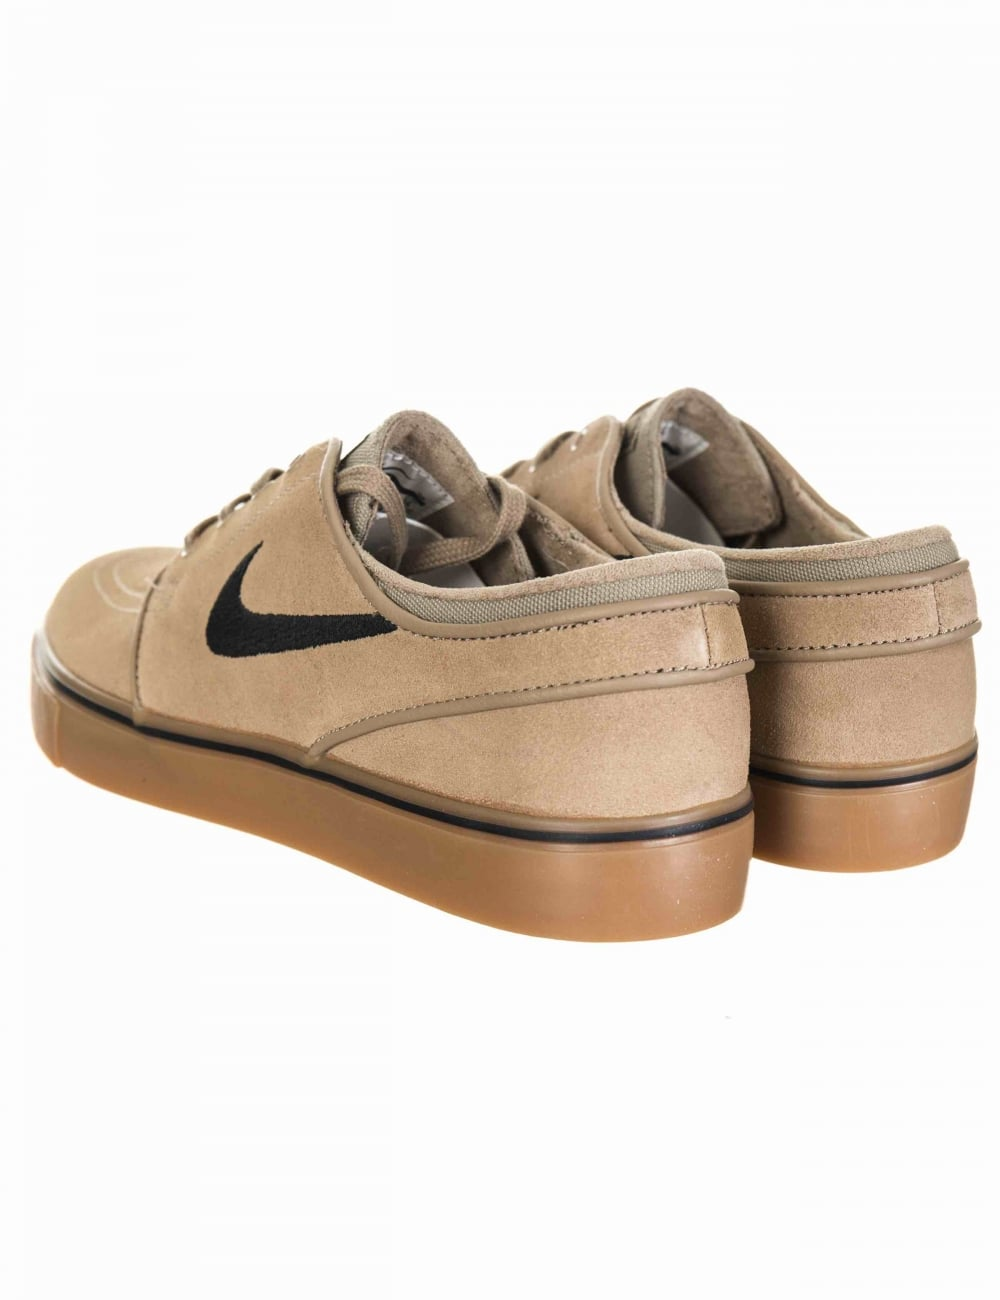 a8ecc388bf2aa5 Nike SB Stefan Janoski Shoes - Khaki Black - Footwear from Fat ...